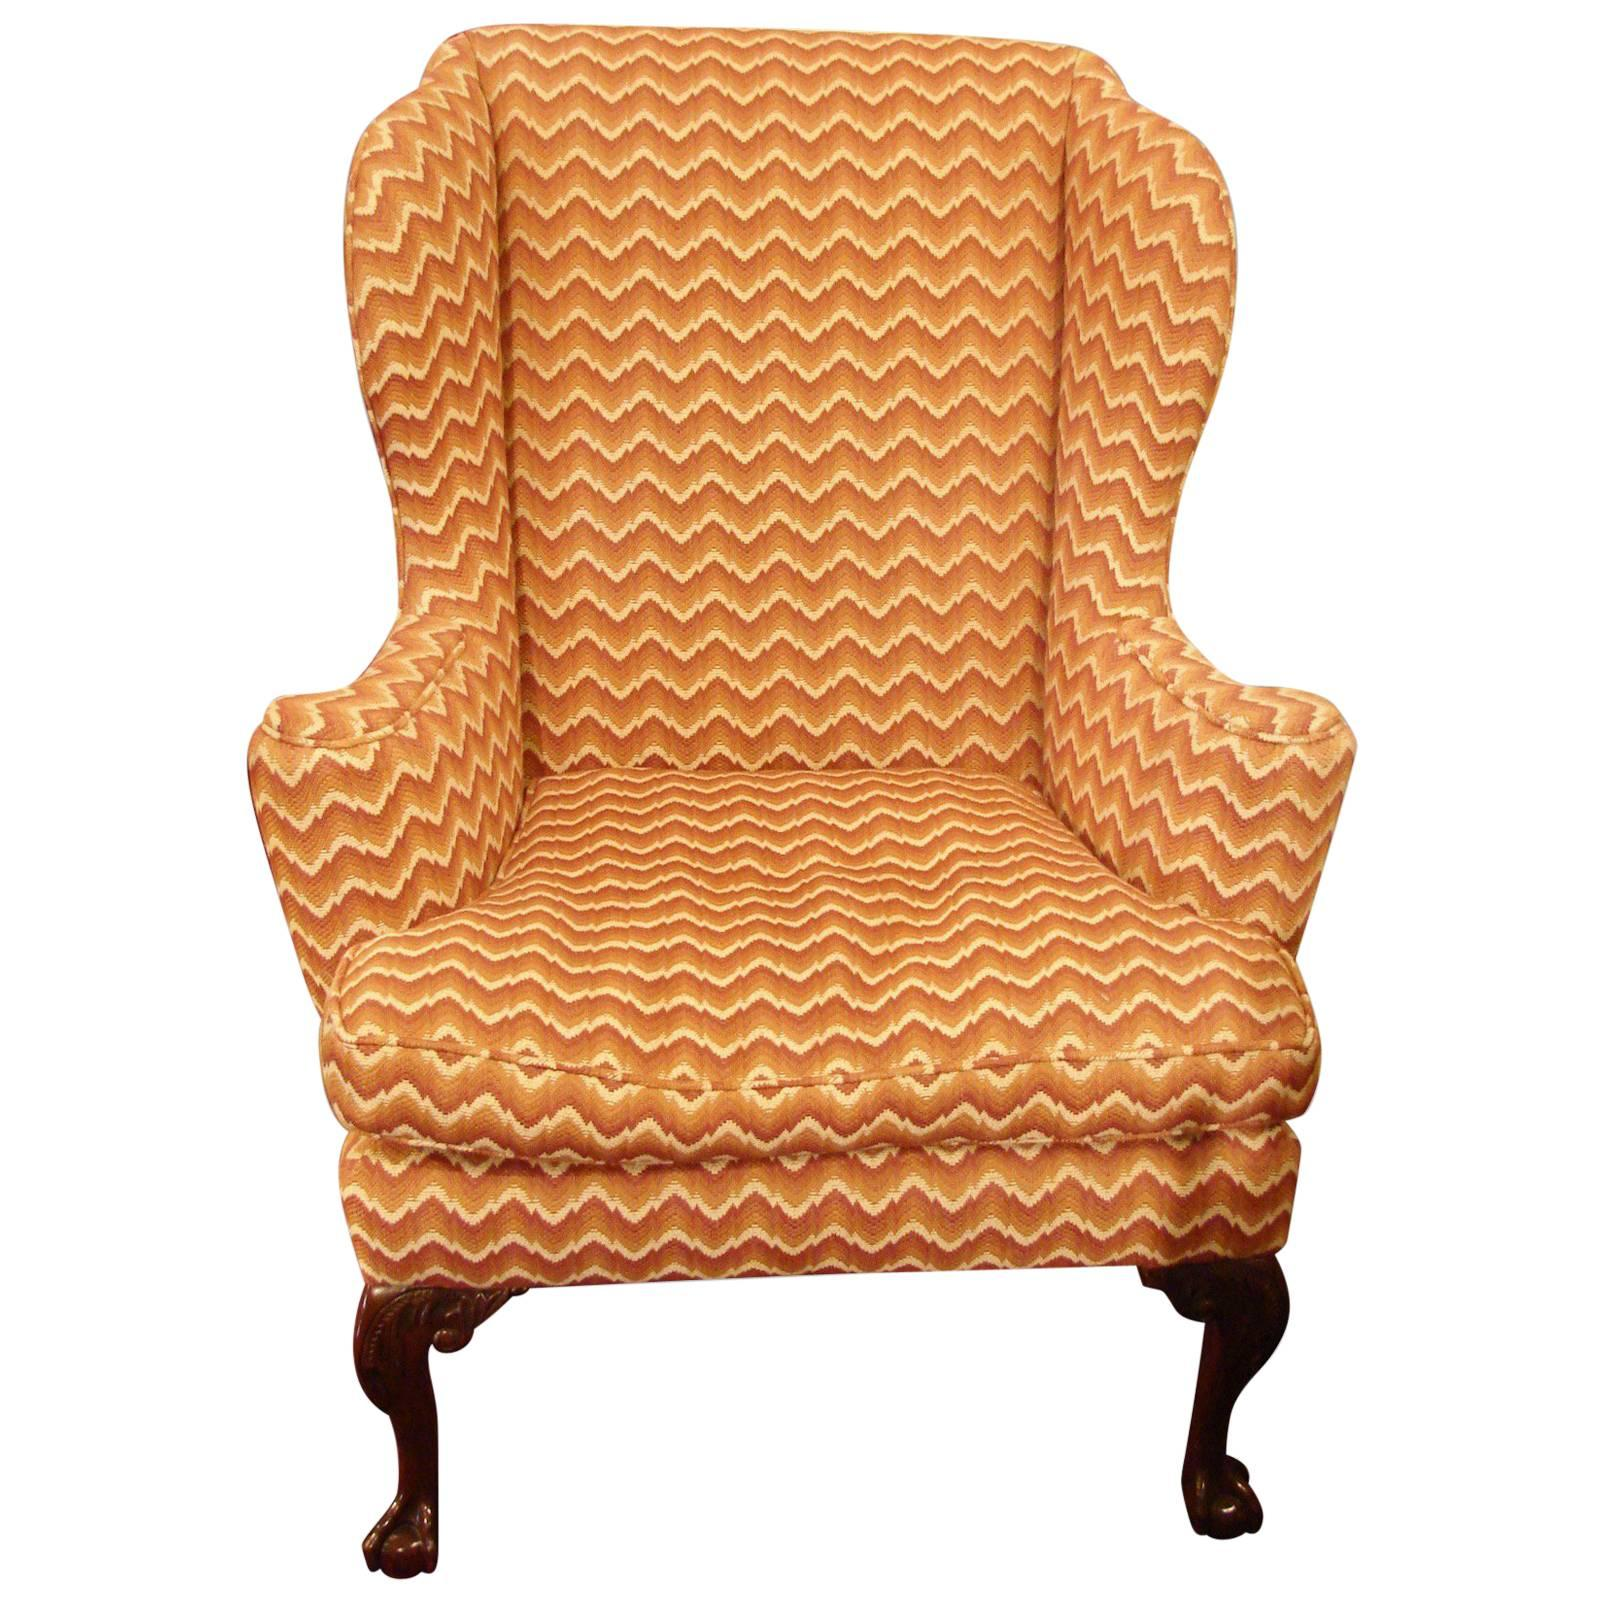 George III Style Mahogany Upholstered Wing Back Armchair